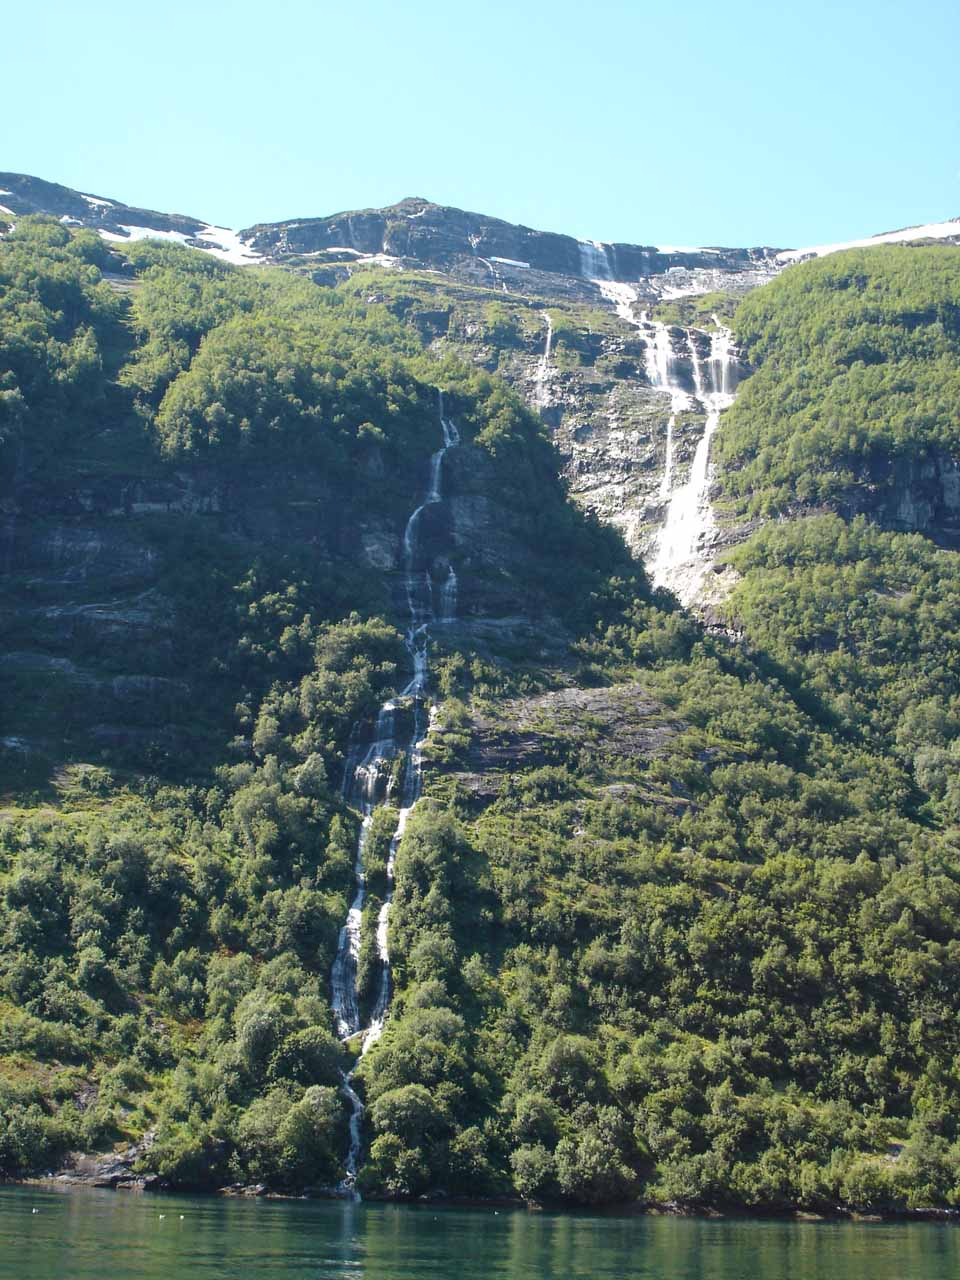 Looking back towards some attractive ephemeral waterfalls